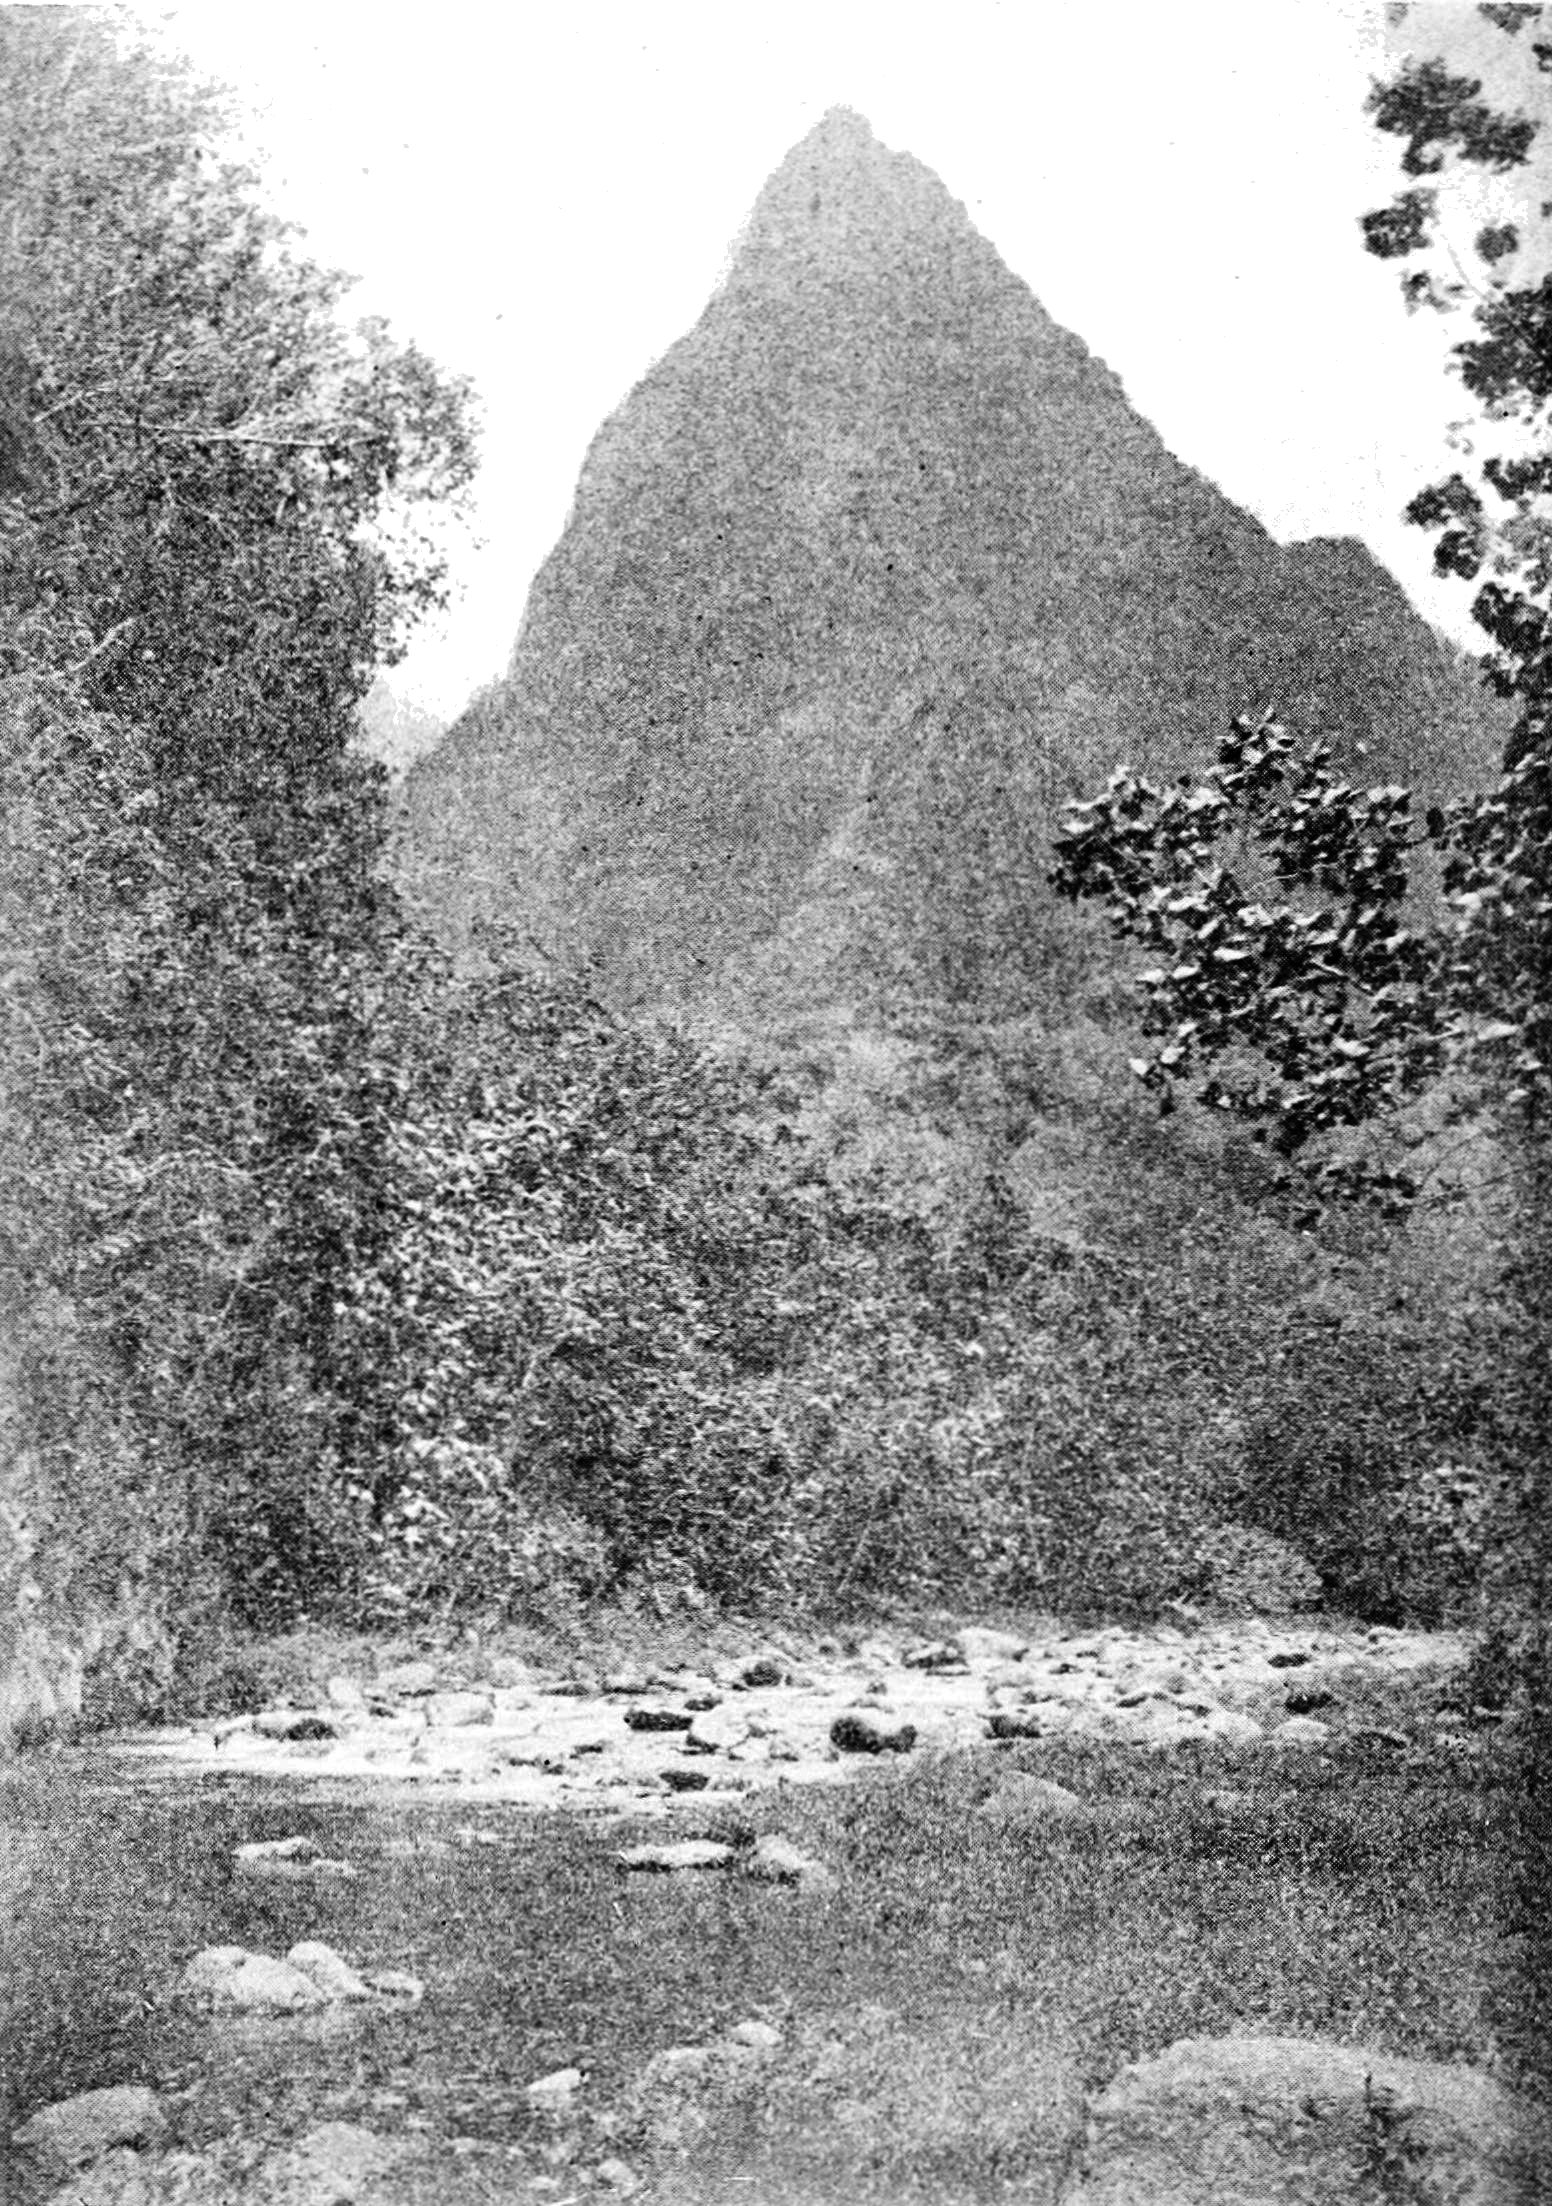 PSM V86 D410 Peak in fautaua valley tahiti.jpg